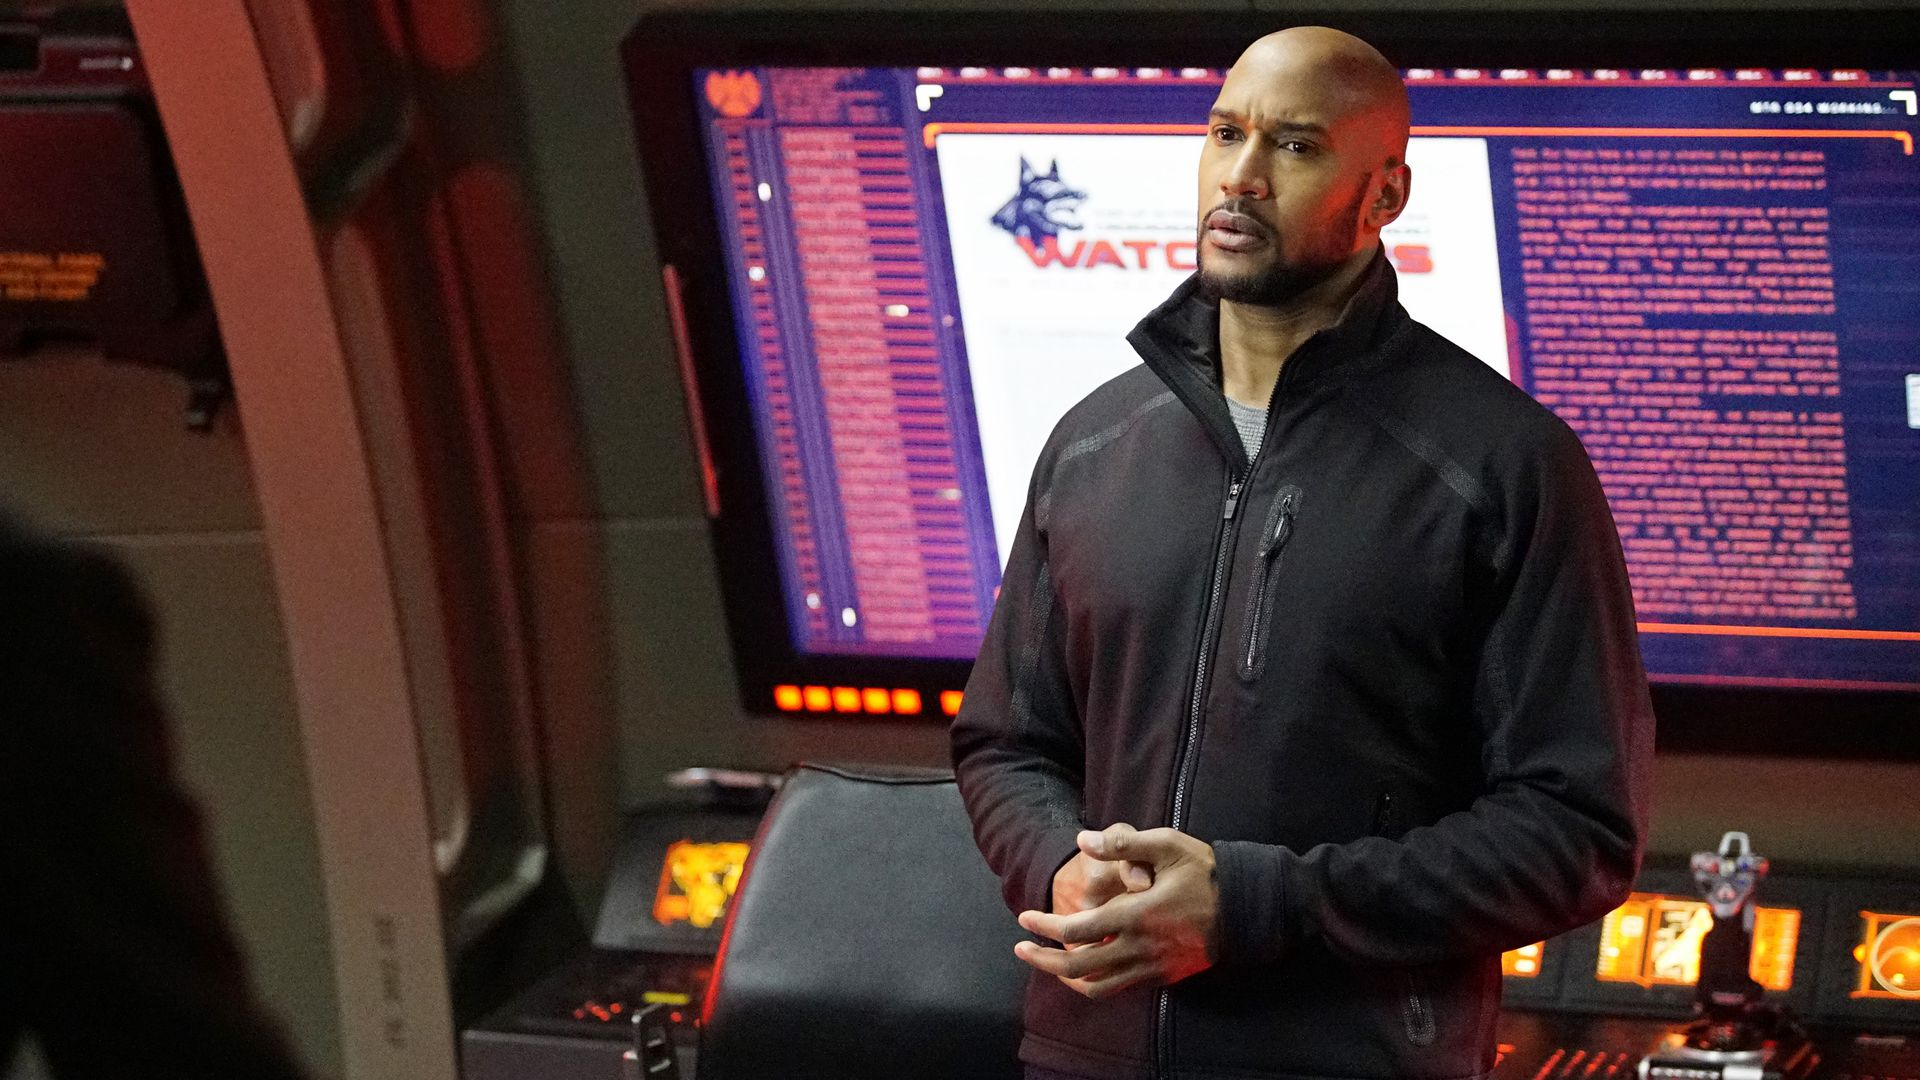 TV REVIEW: Agents of SHIELD: Season 3 Episode 14 - Watchdogs